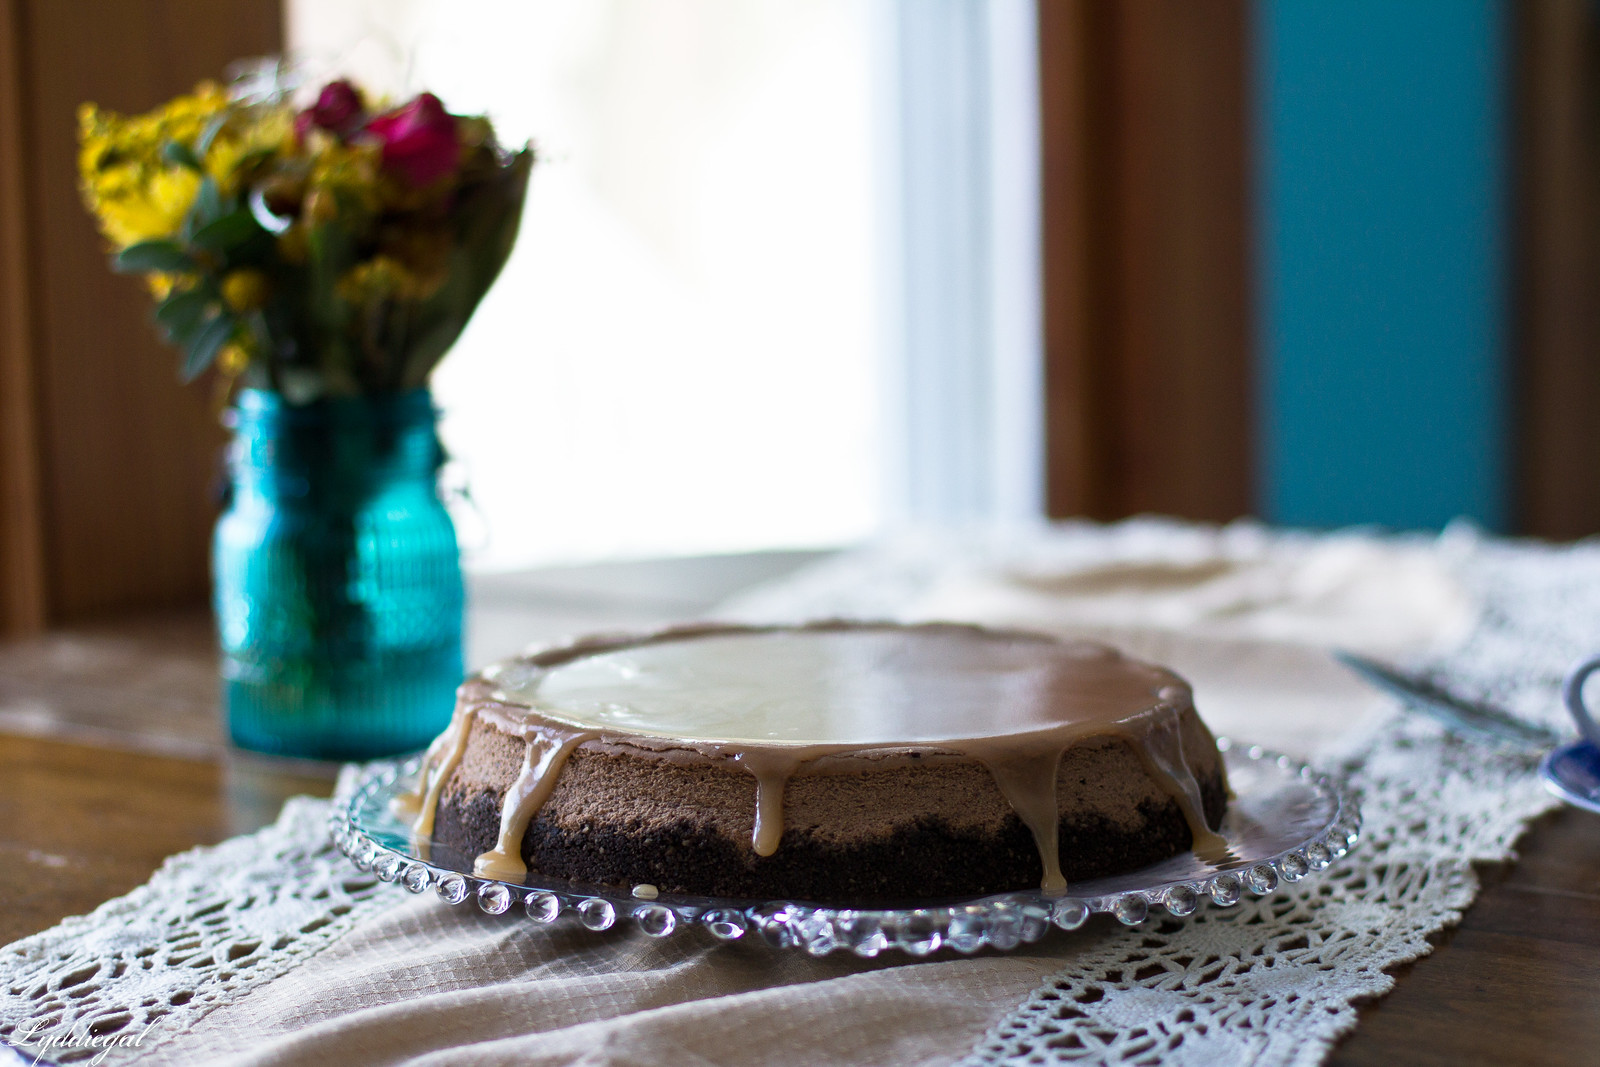 dark chocolate salted caramel cheesecake-1.jpg